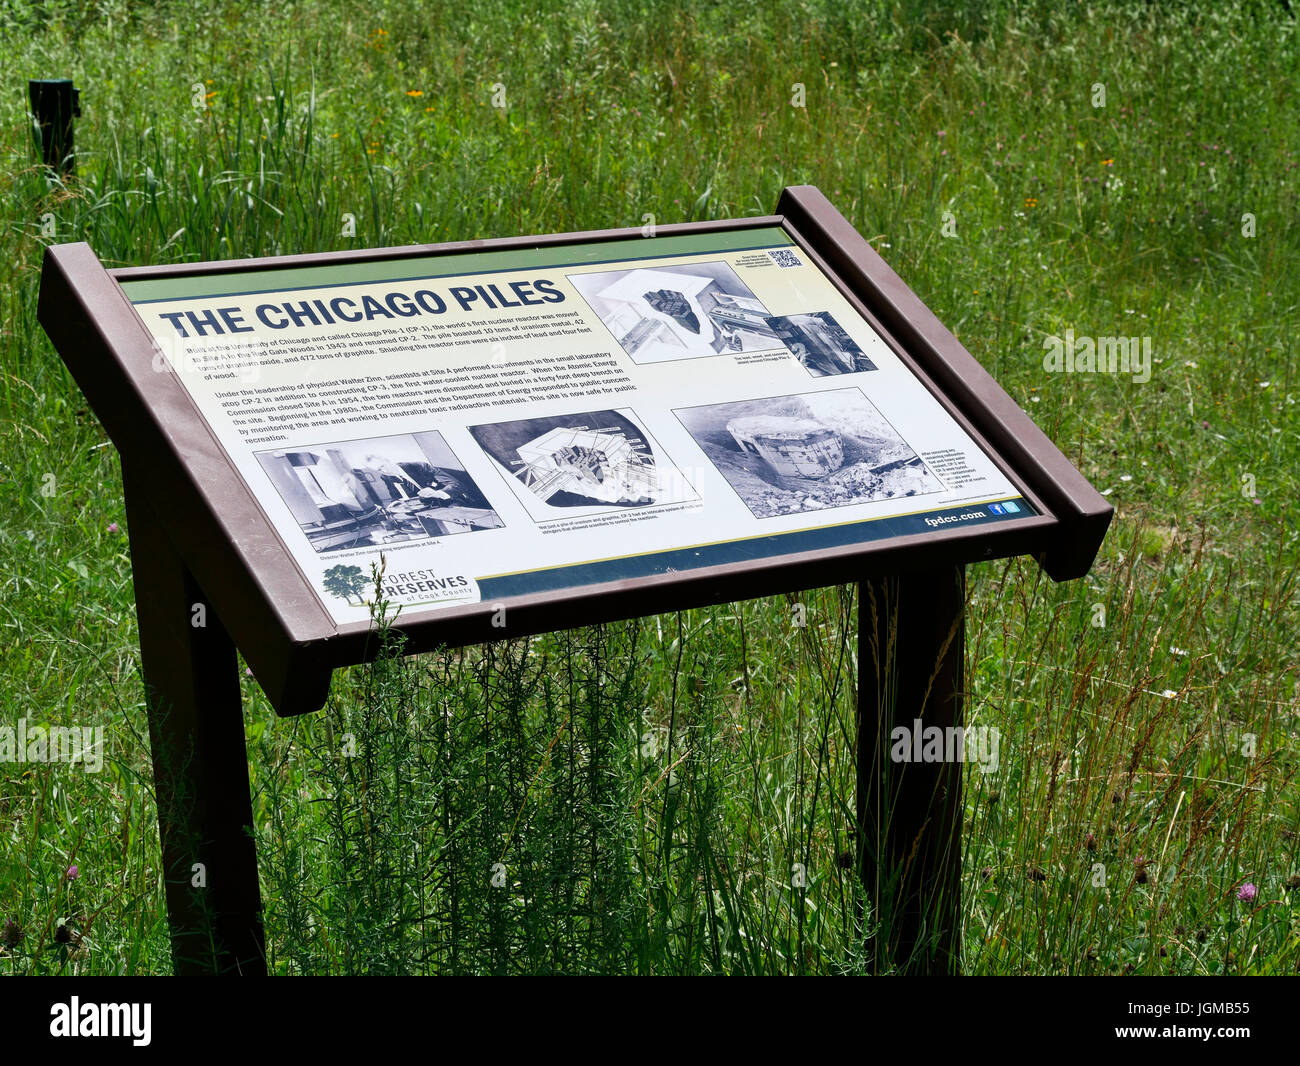 Interpretive sign at Site A describing Chicago Piles, Former Manhatten Project research facility, Red Gate Woods, - Stock Image